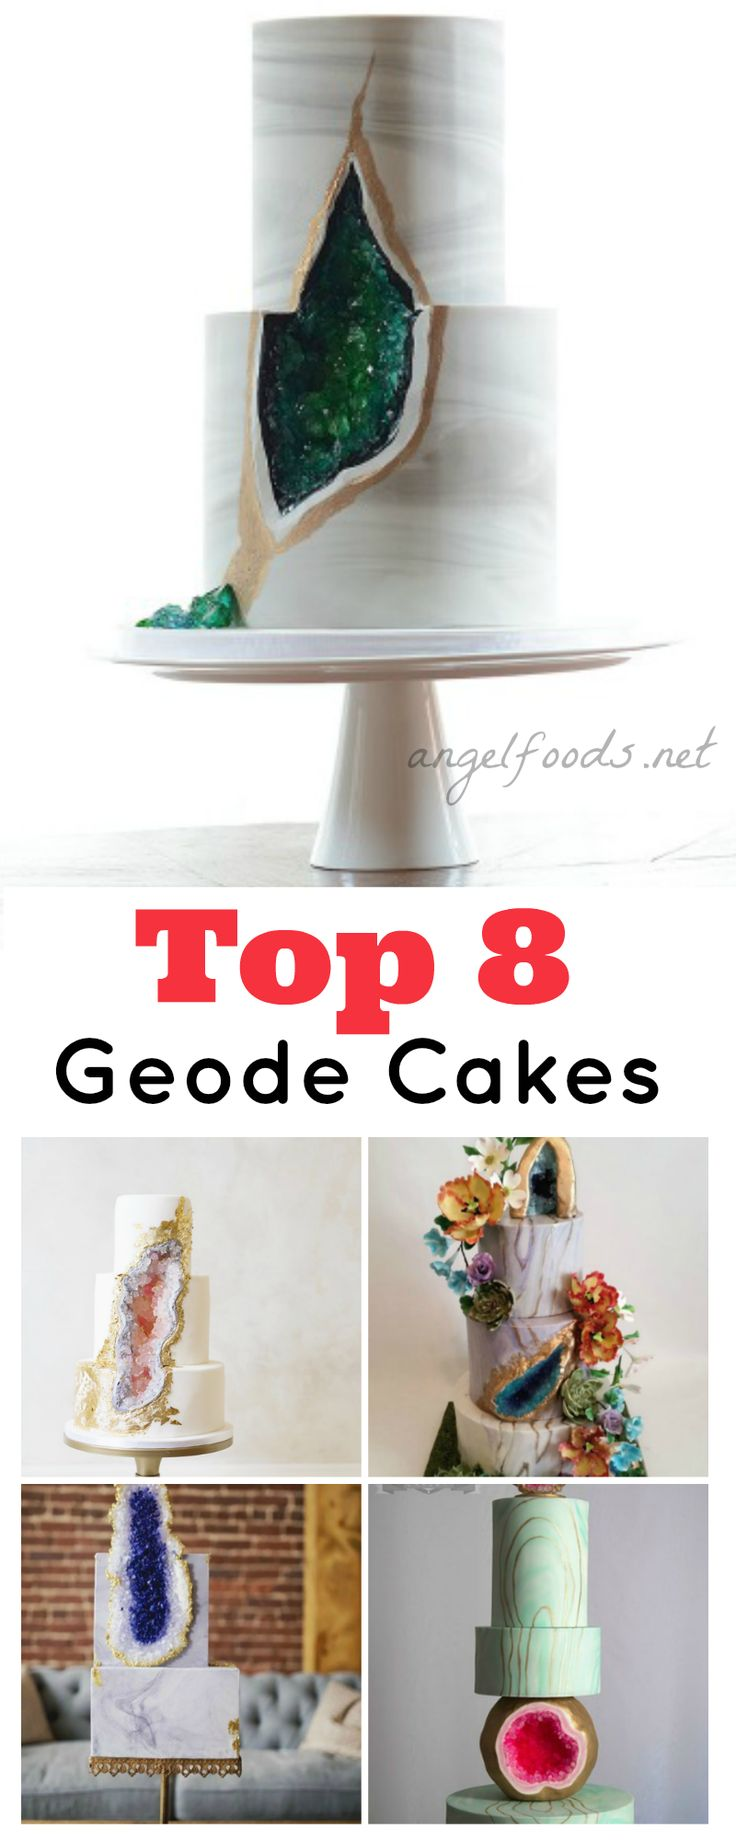 Top 8 Geode Cakes   You may have seen, and even tried your hand at the latest trend going around at the moment... Geode Cakes.   http://angelfoods.net/top-8-geode-cakes